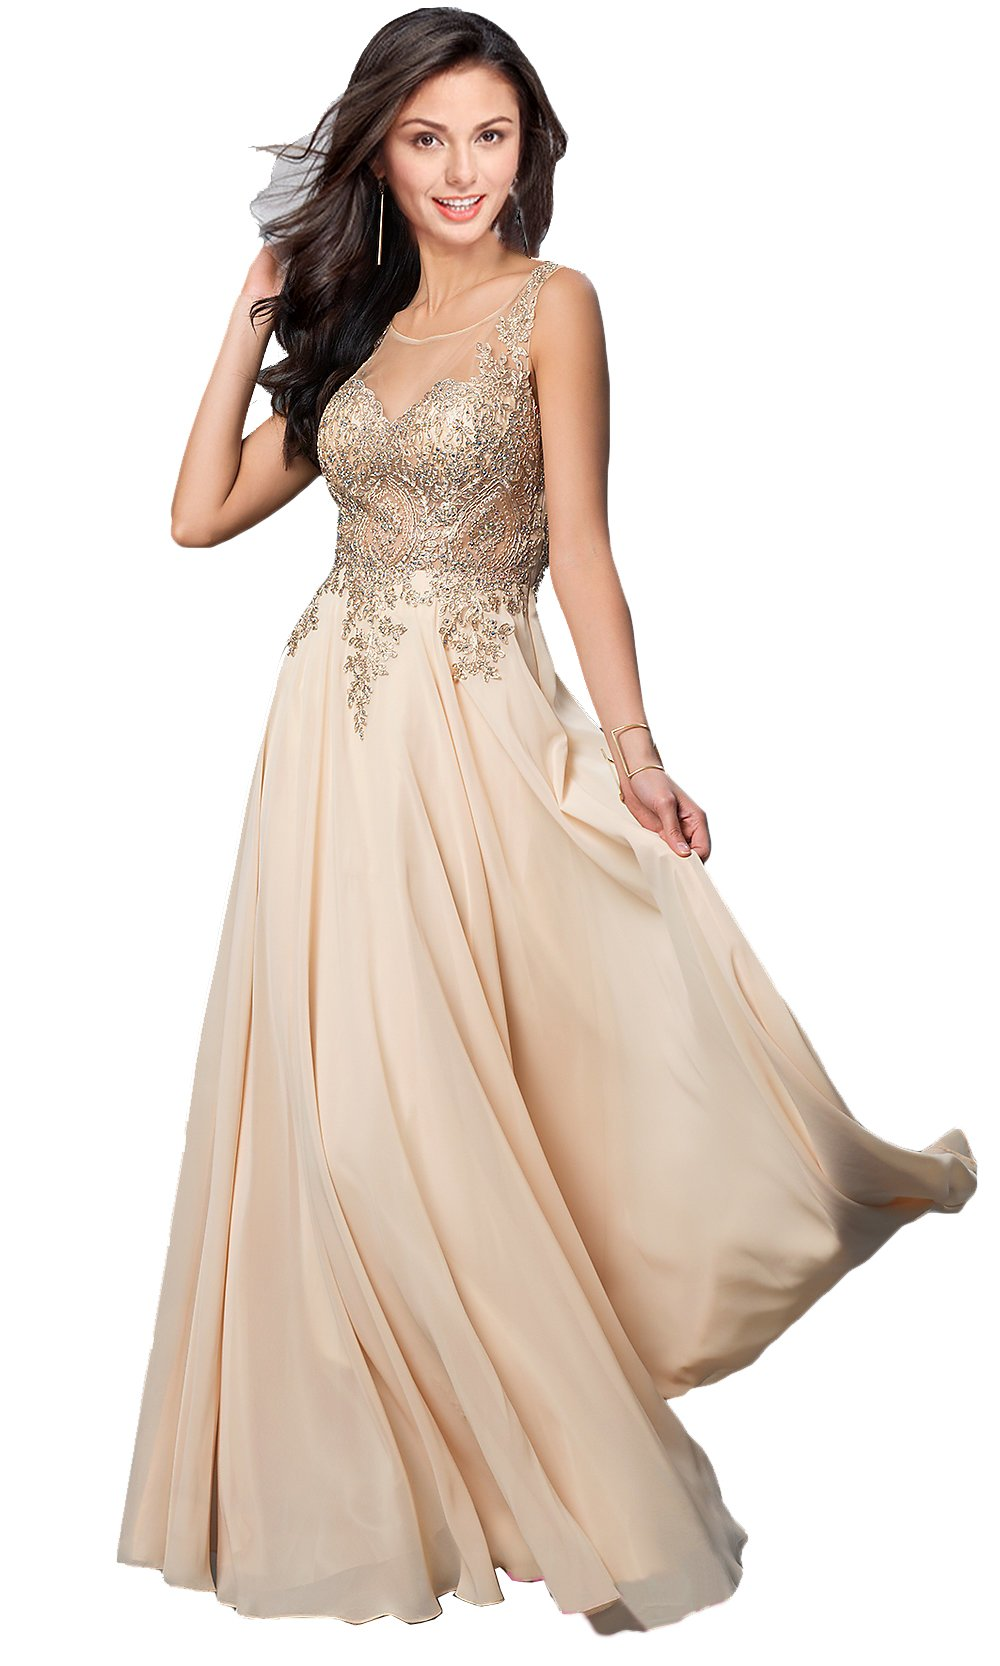 Rongstore Women's A line Chiffon Long Appliques Formal Evening Party Dresses Champagne US 20W